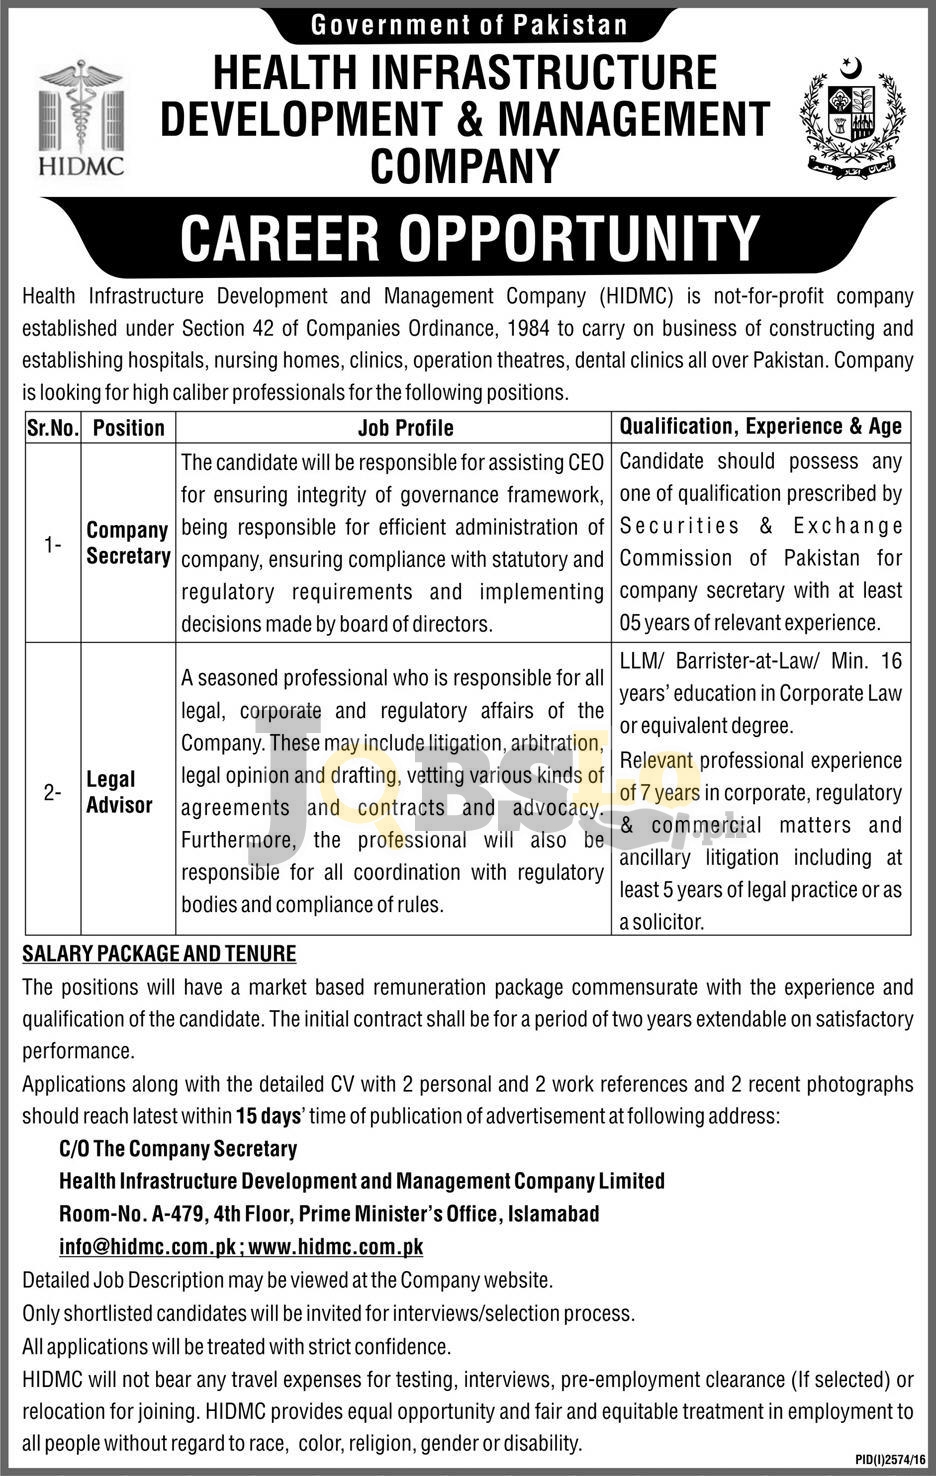 Health Infrastructure Development & Management Company Jobs